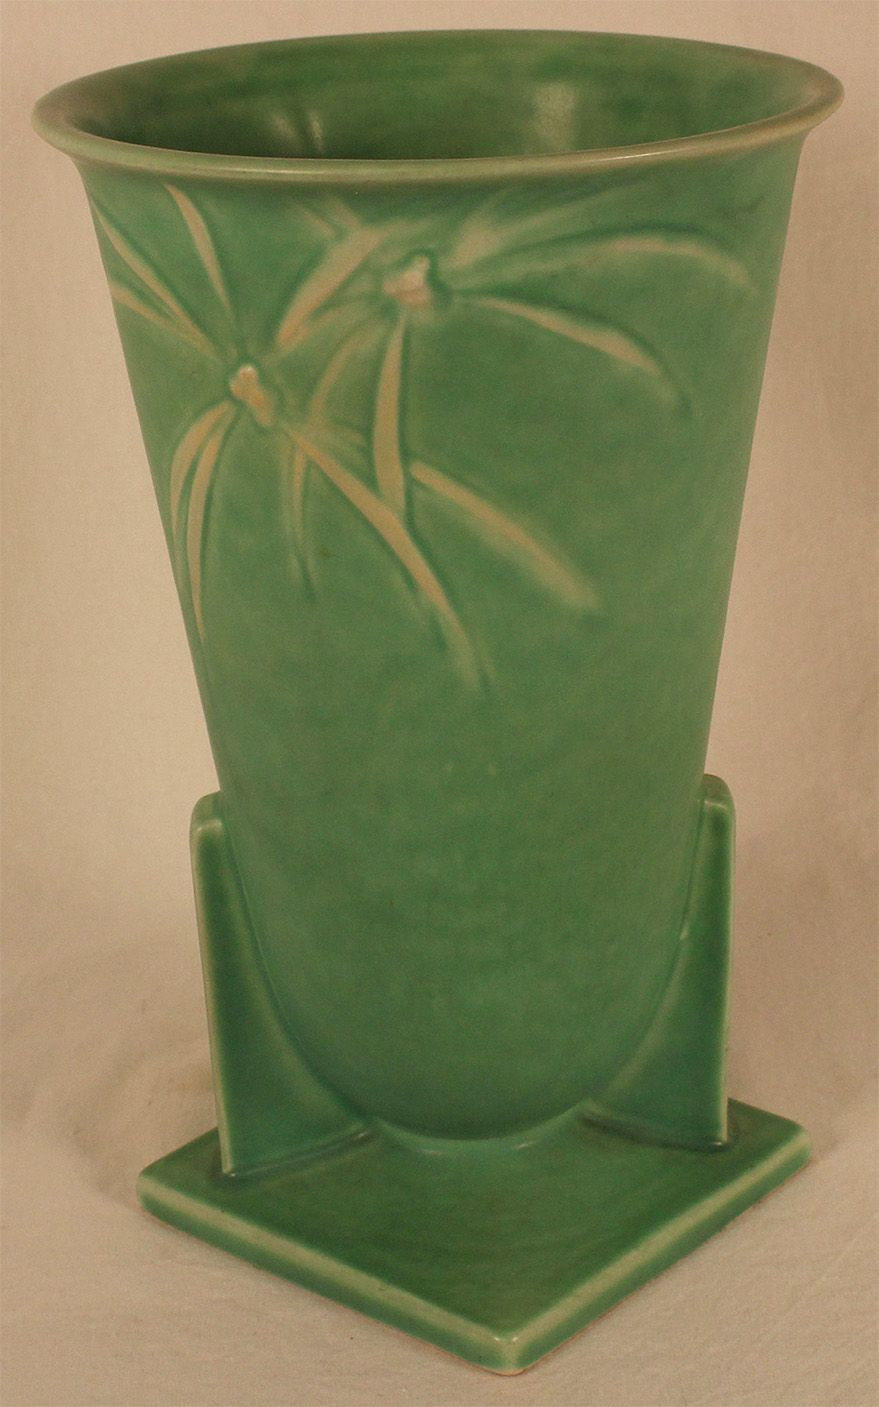 roseville pottery vase clematis of roseville pottery dawn green vase 831 9 from just art pottery within roseville pottery dawn green vase 831 9 from just art pottery